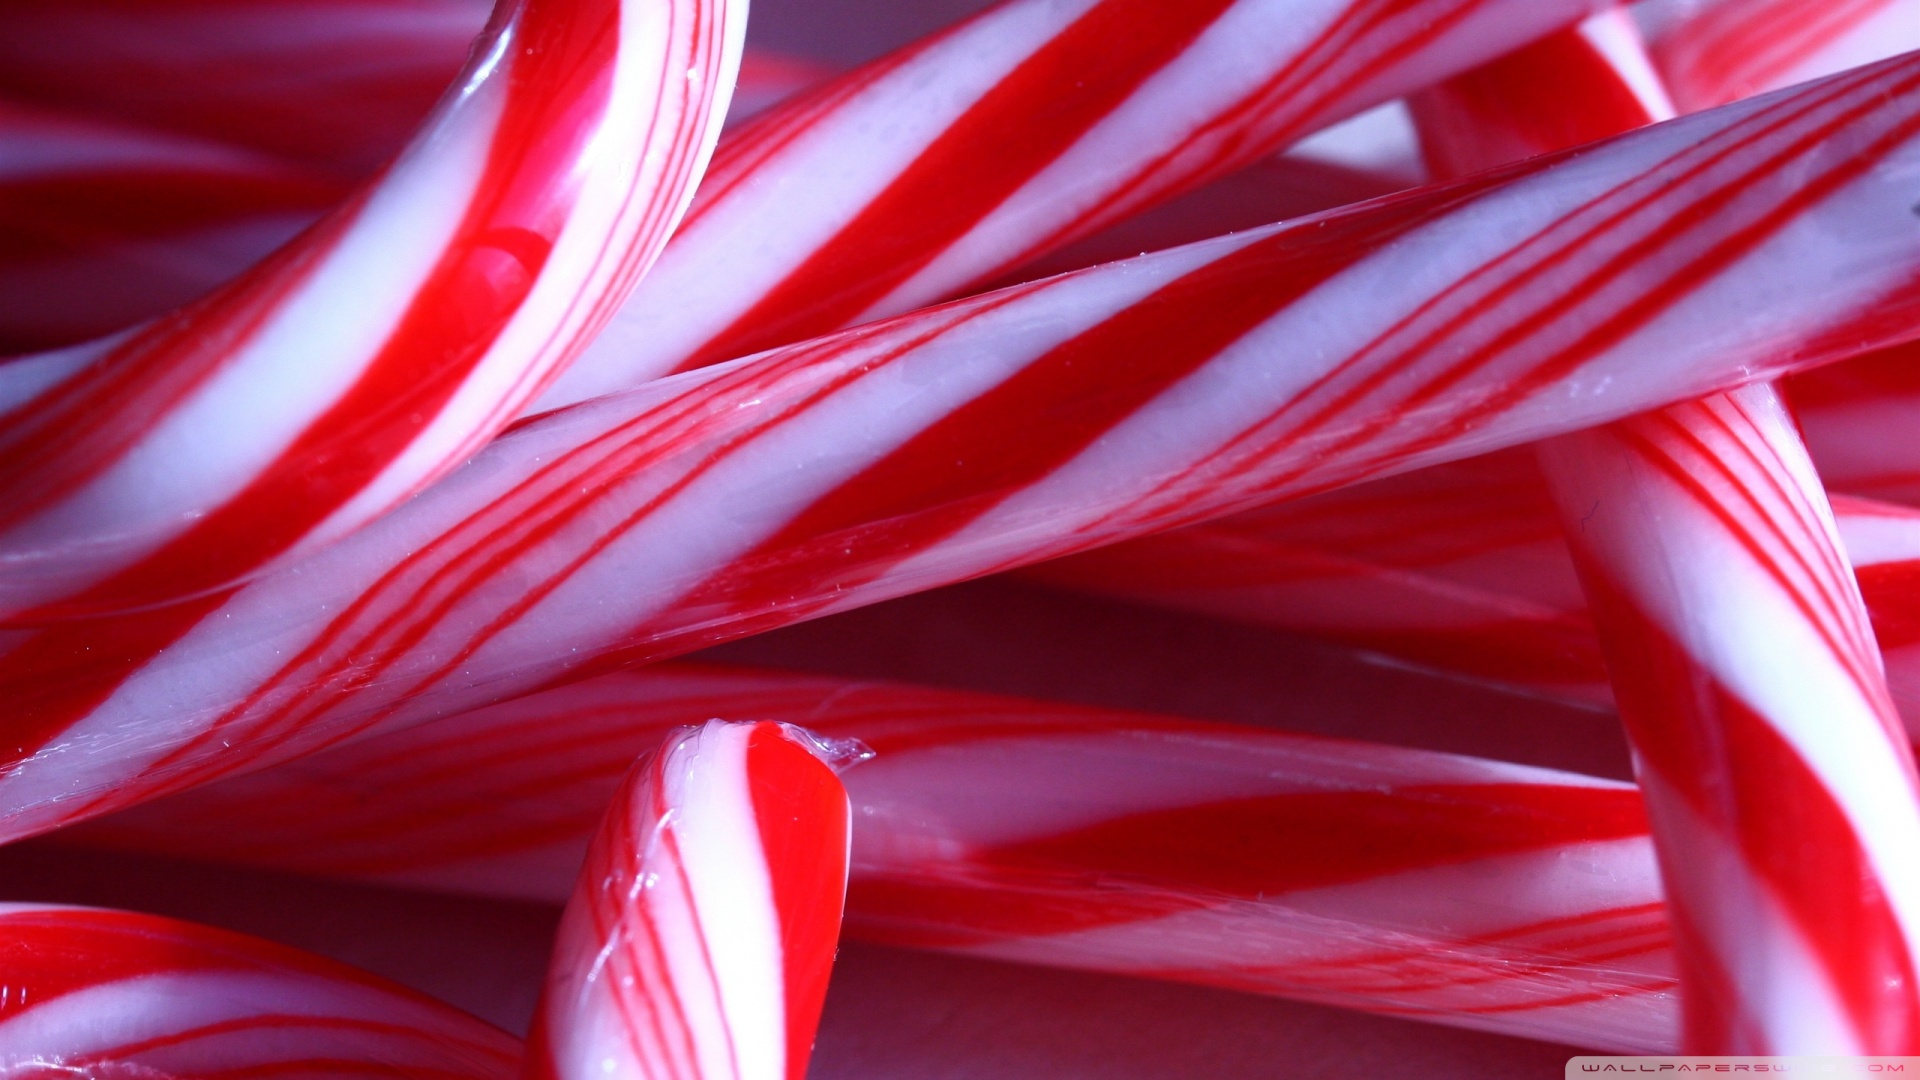 Candy Canes Wallpaper 1920x1080 Candy Canes 1920x1080